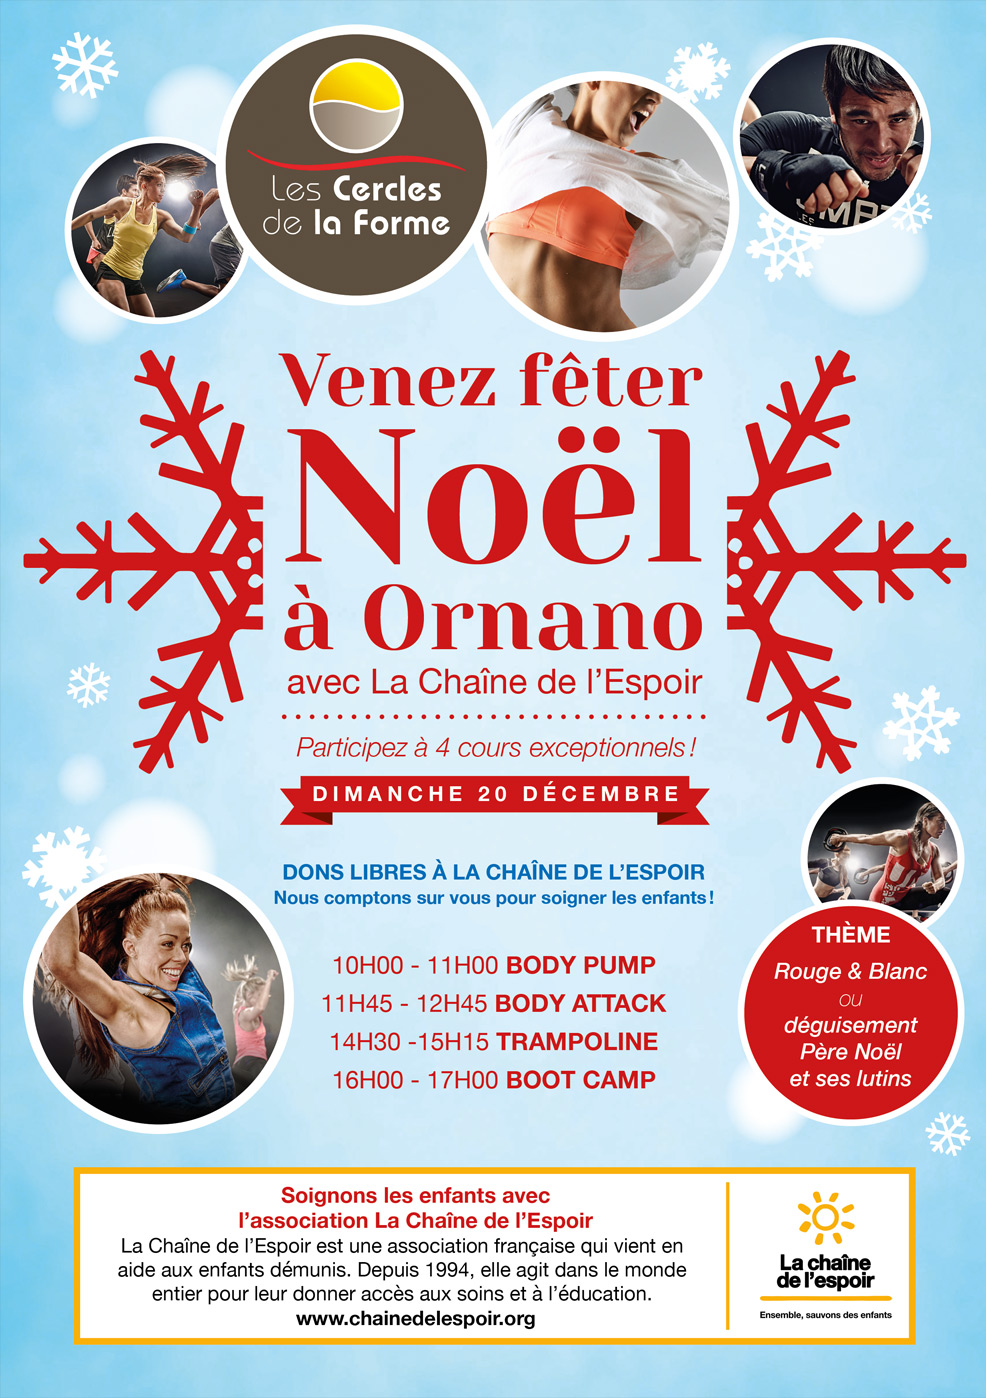 http://blog.cerclesdelaforme.com/evenement-fitness-noel-au-cercle-ornano